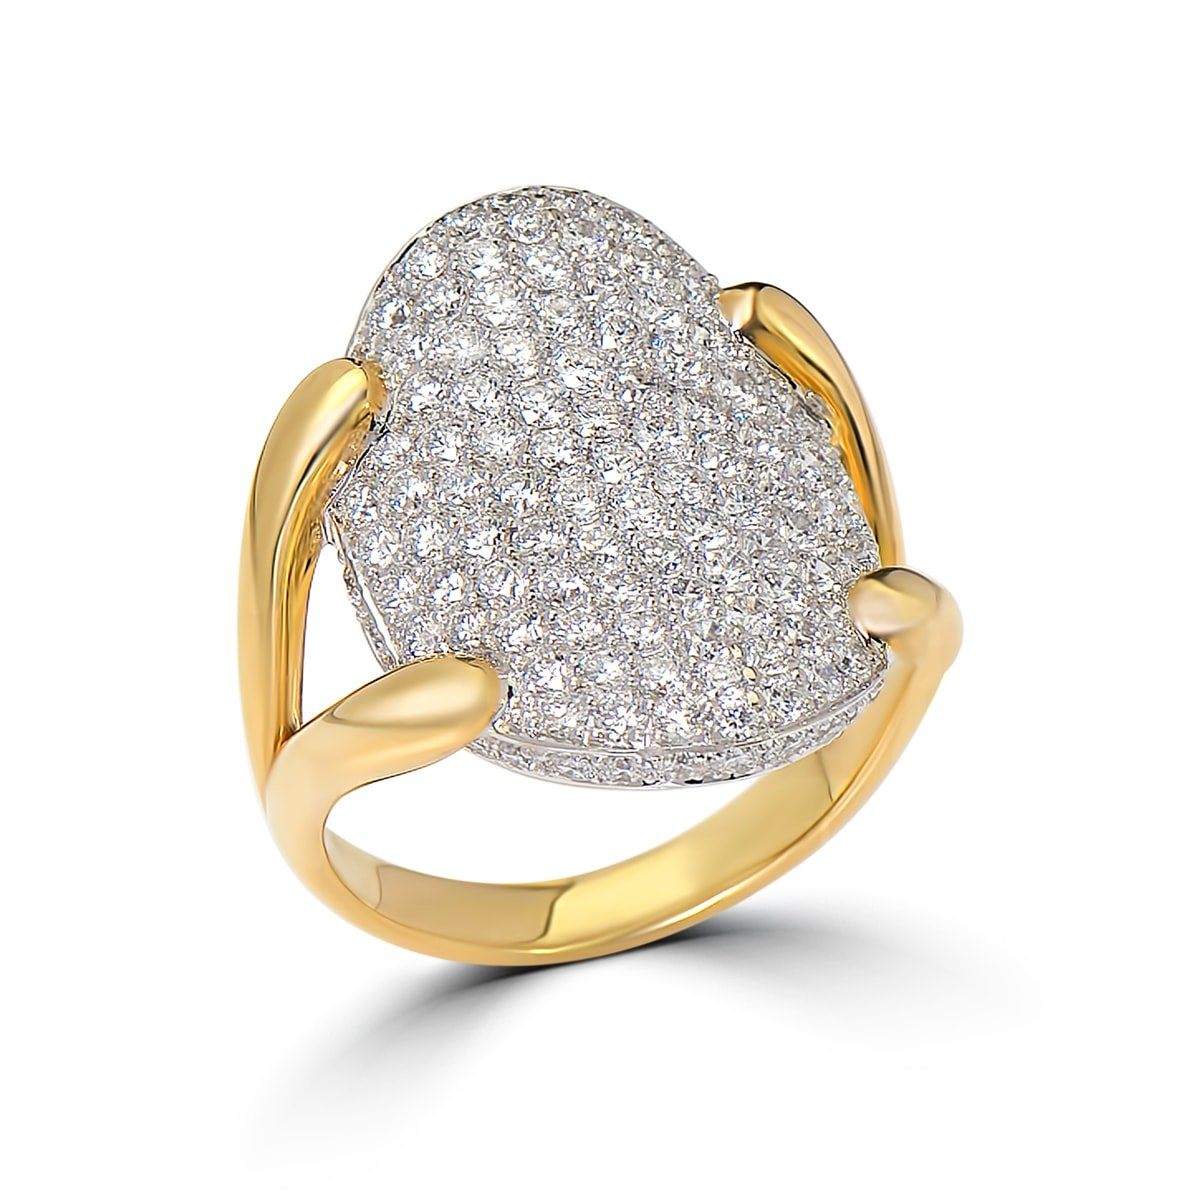 Gold and Diamong Engagement Ring